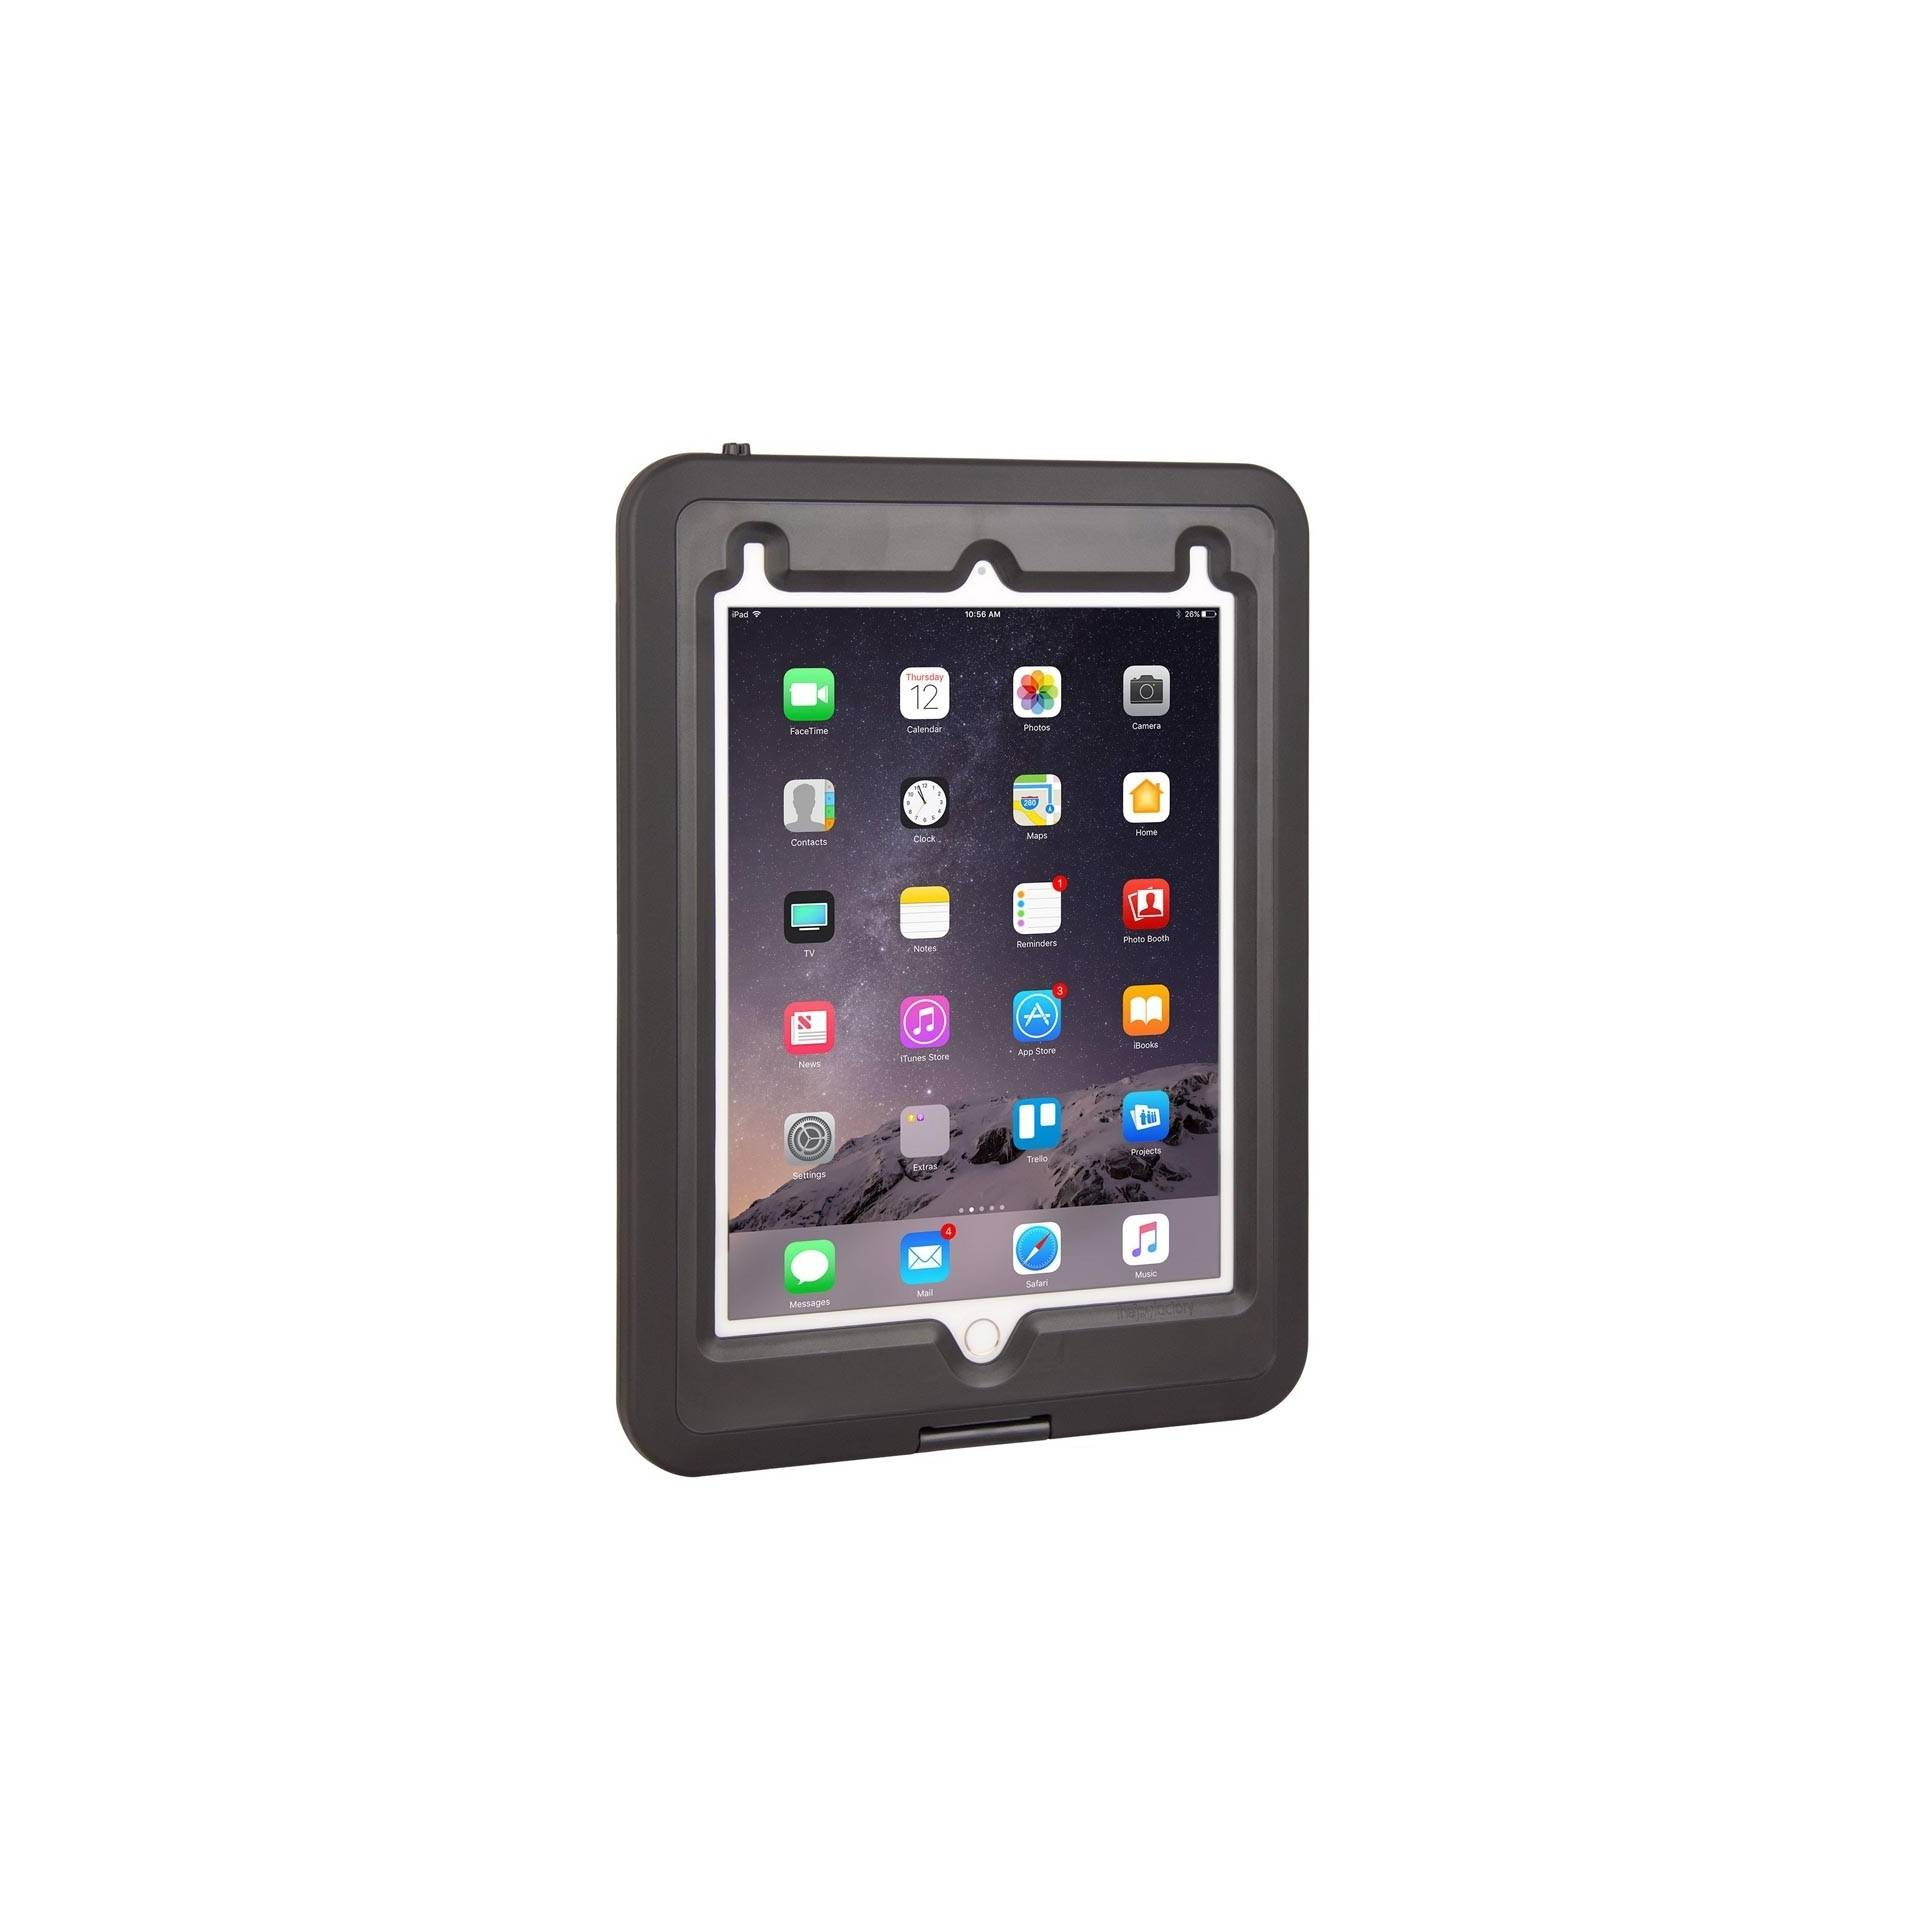 THE JOY FACTORY Protection ultra resistante - iPad 9.7 5e gen - aXtion Pro M